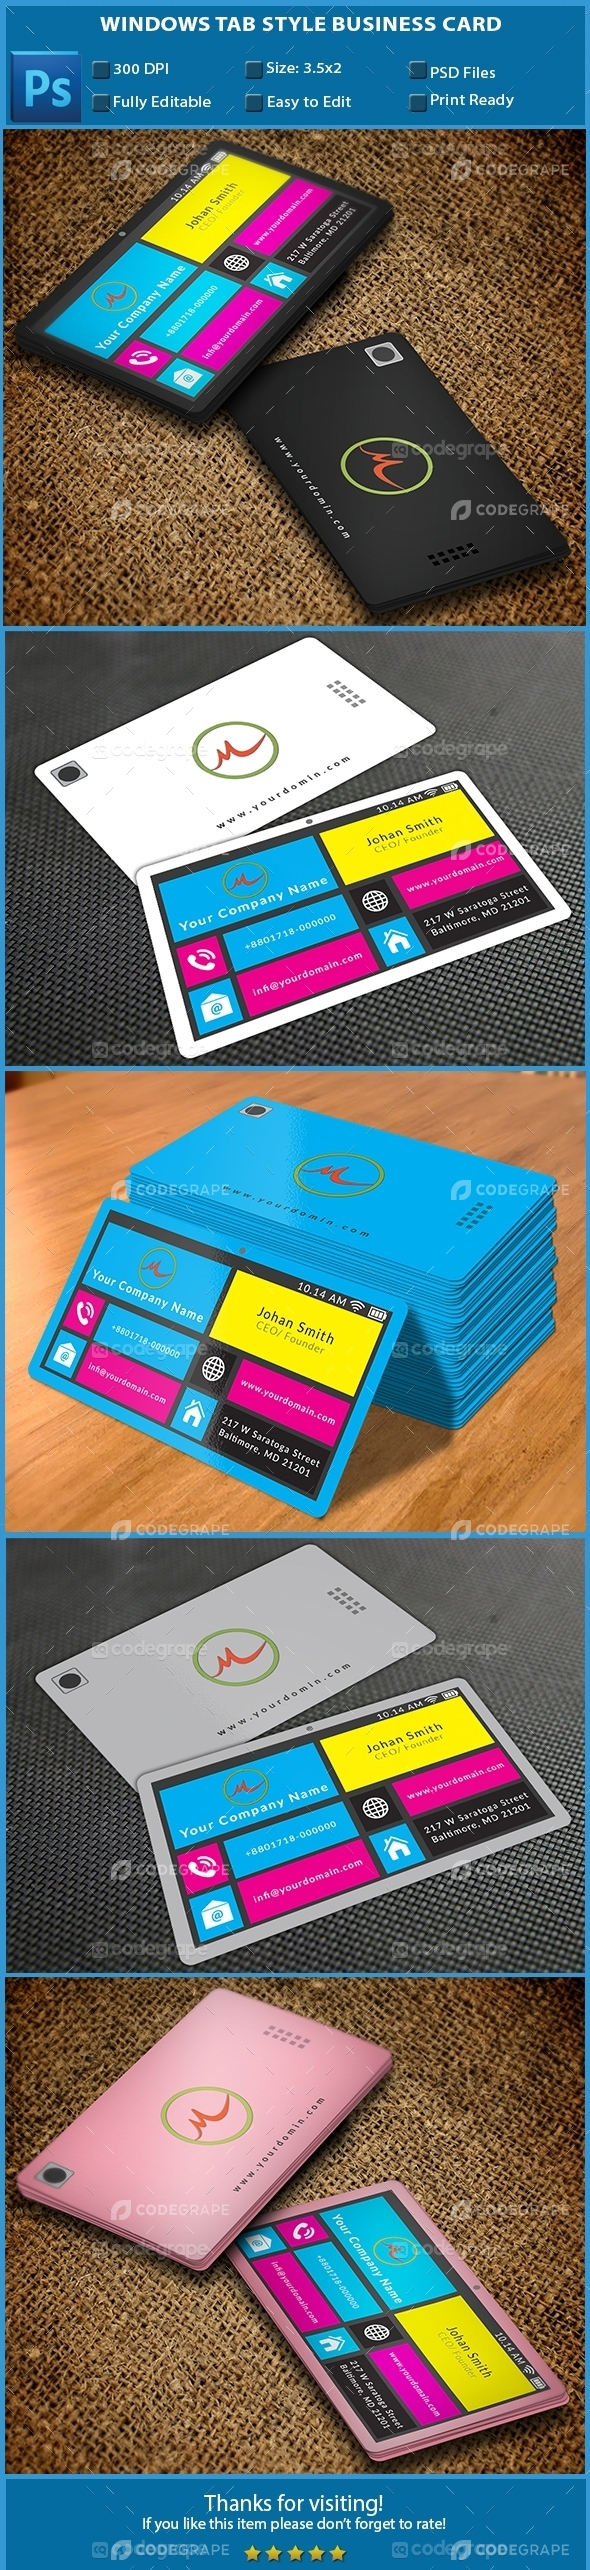 Windows Tab Style Business Card